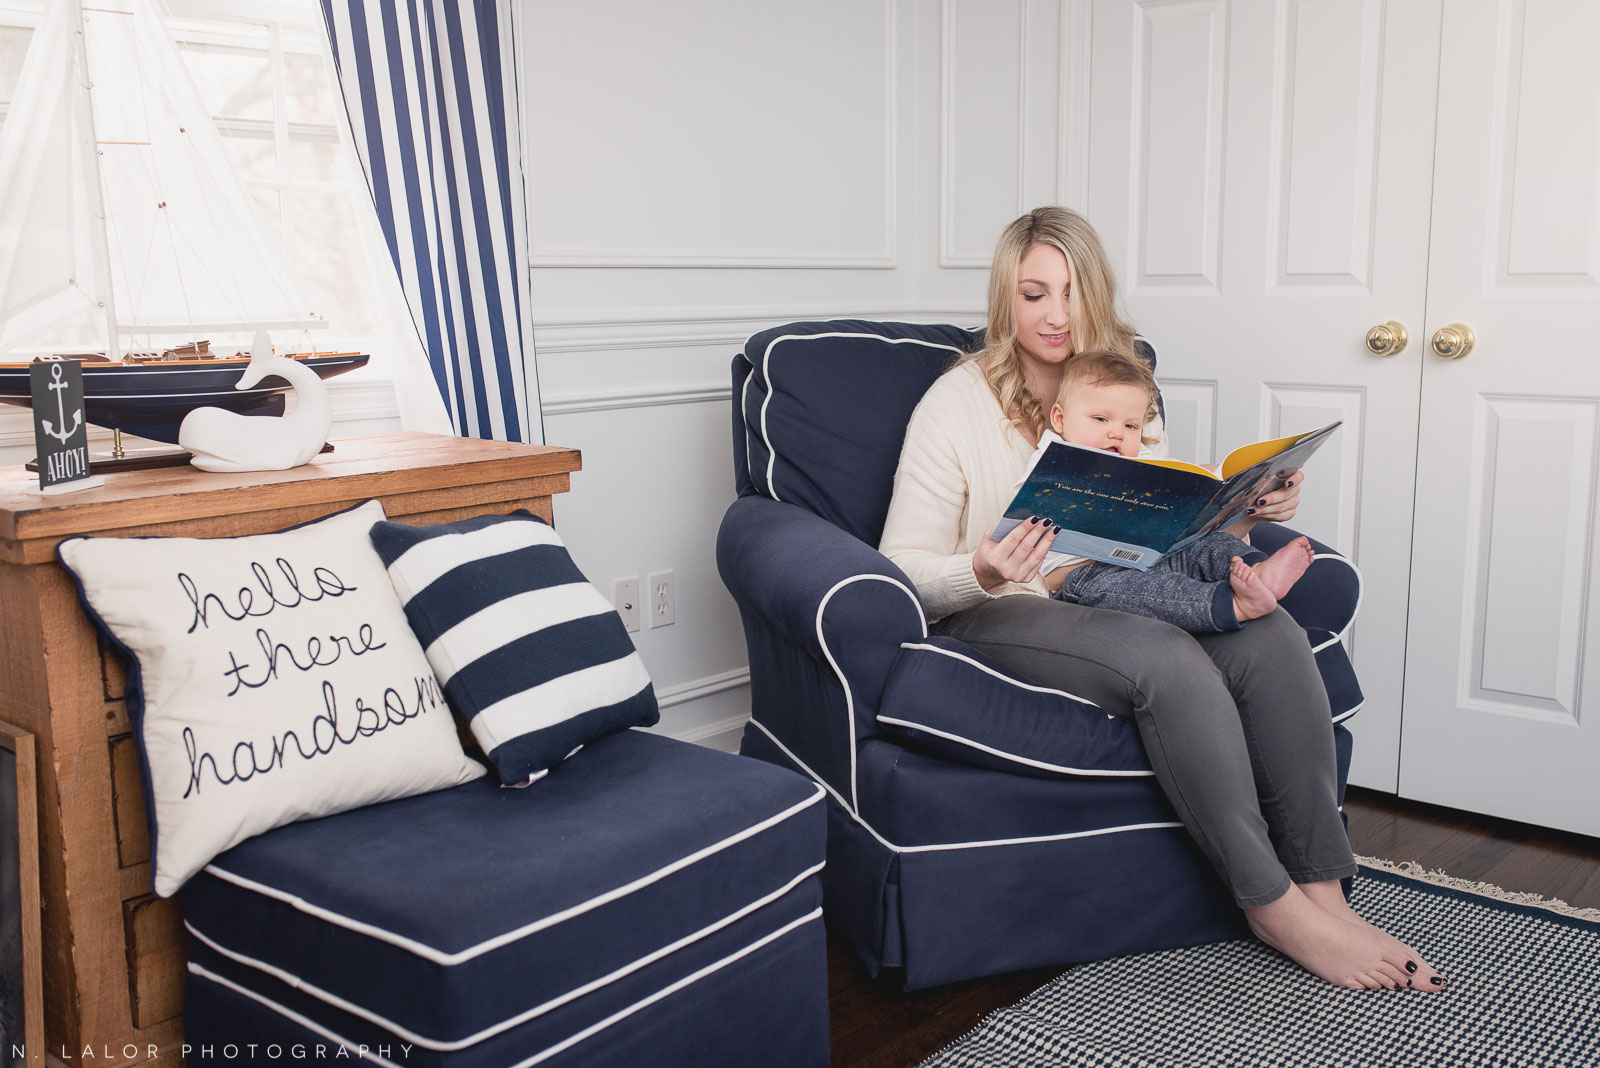 Story time with Mom. Baby boy's natural themed nursery room. Editorial photo by N. Lalor Photography.